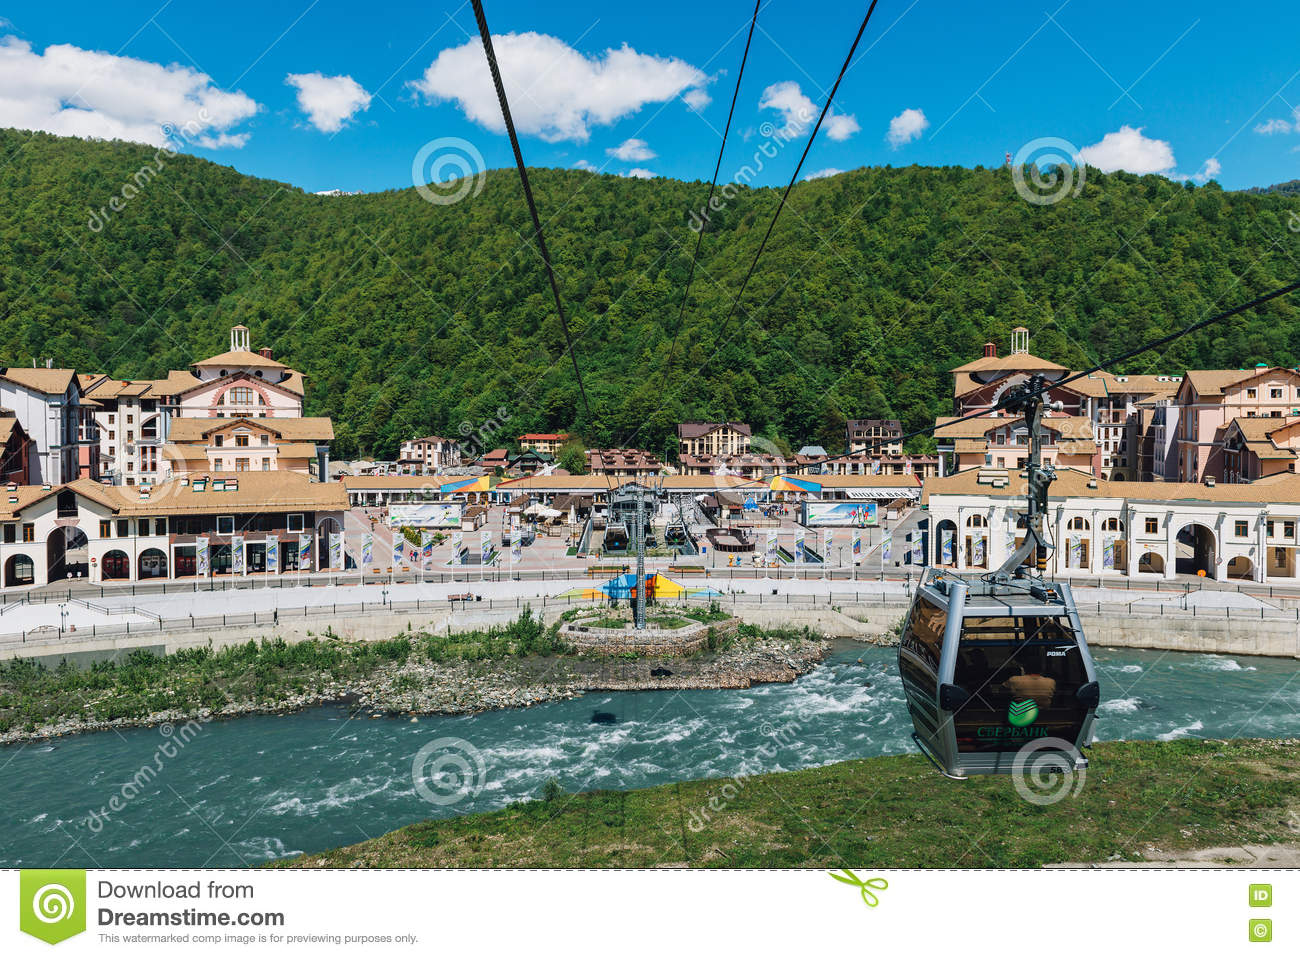 Galaxy - water park (Krasnaya Polyana): water entertainment in the ski resort